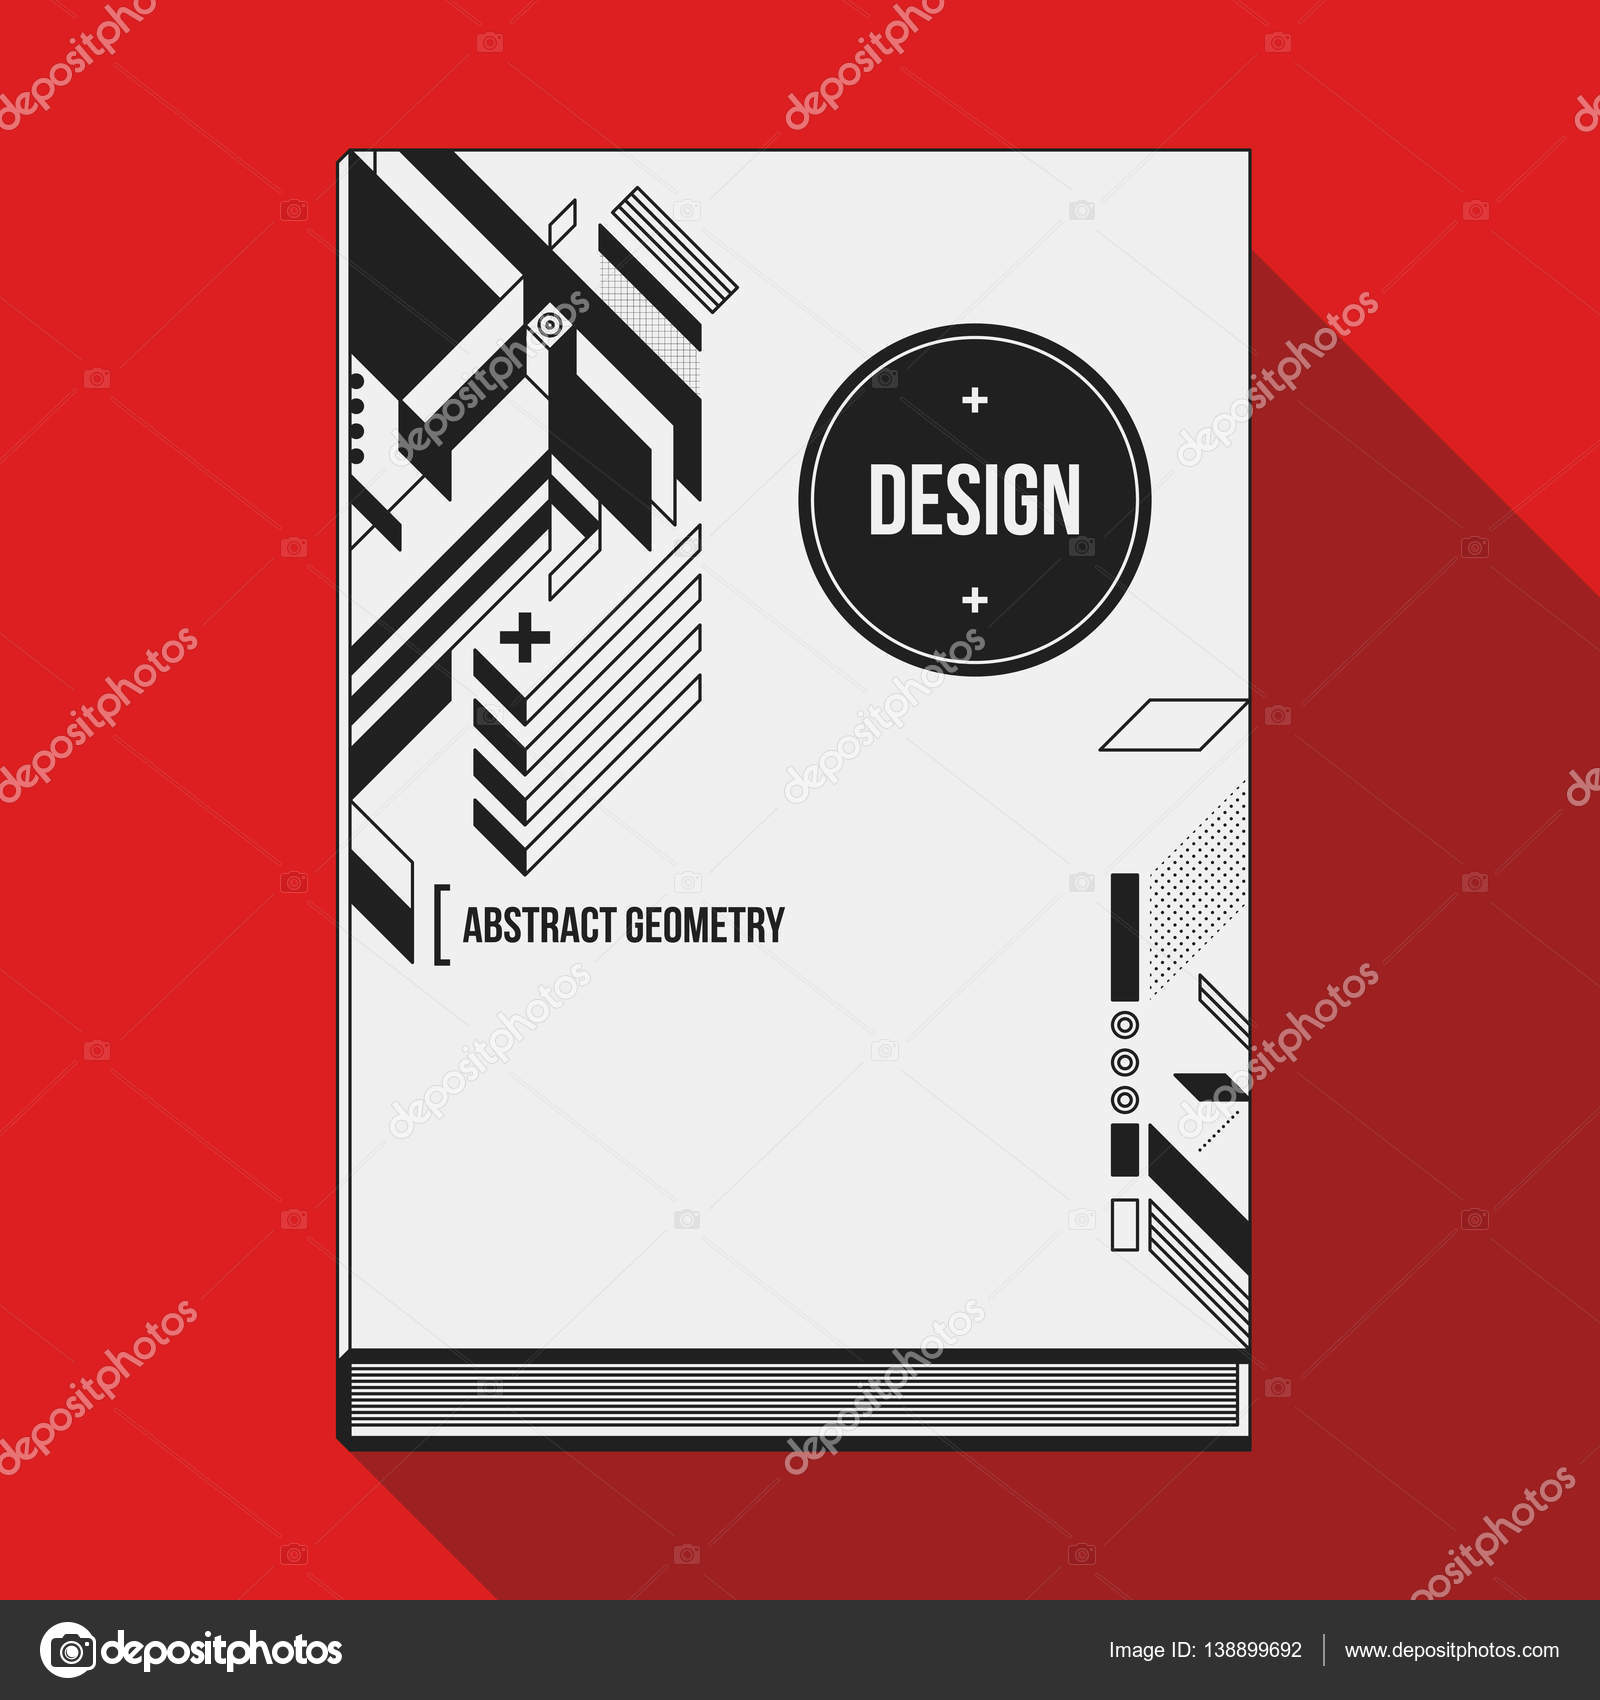 Berühmt Buchcover Vorlage Illustrator Bilder - Entry Level Resume ...